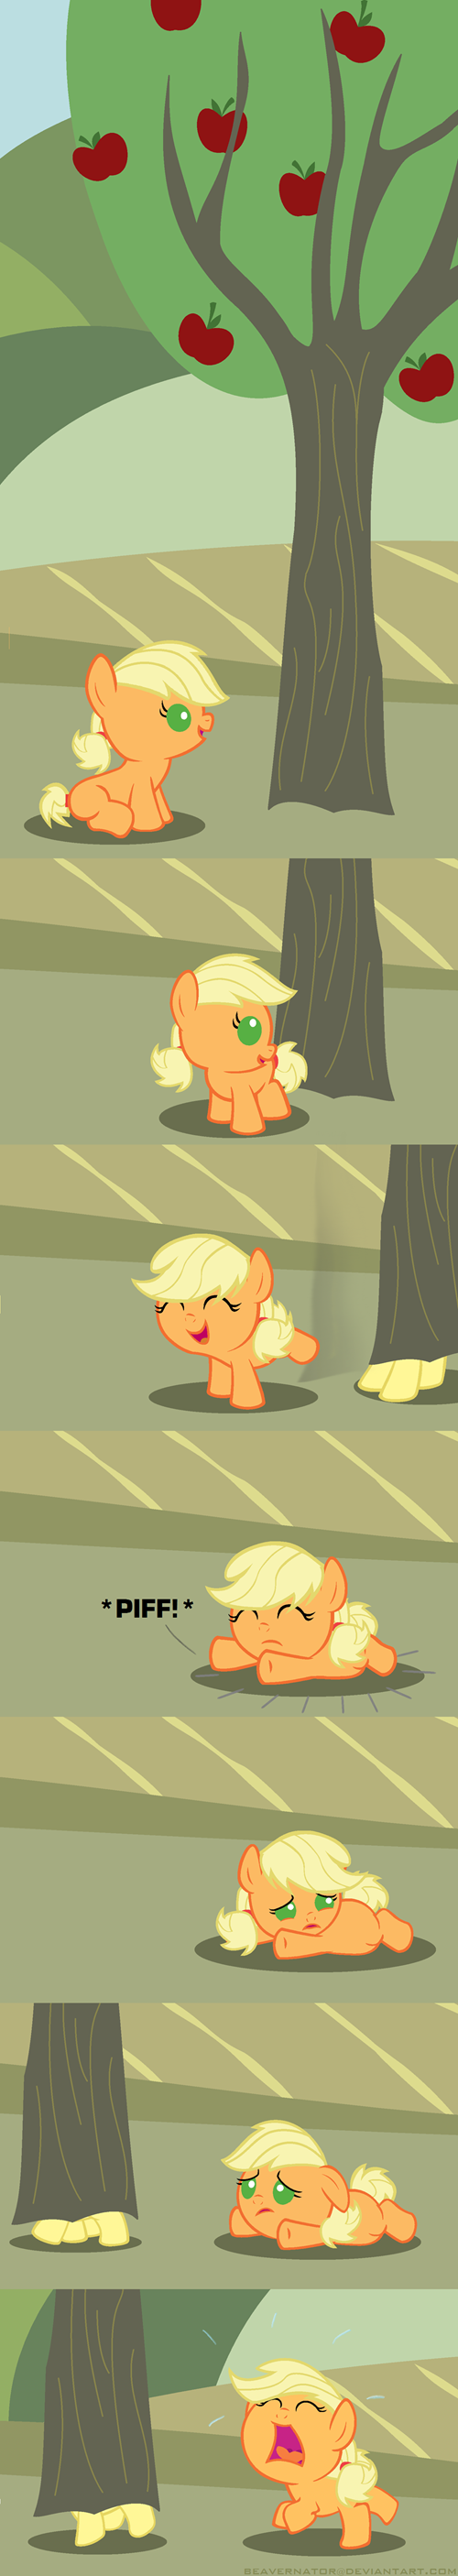 Fluttershy and Applejack as Babies